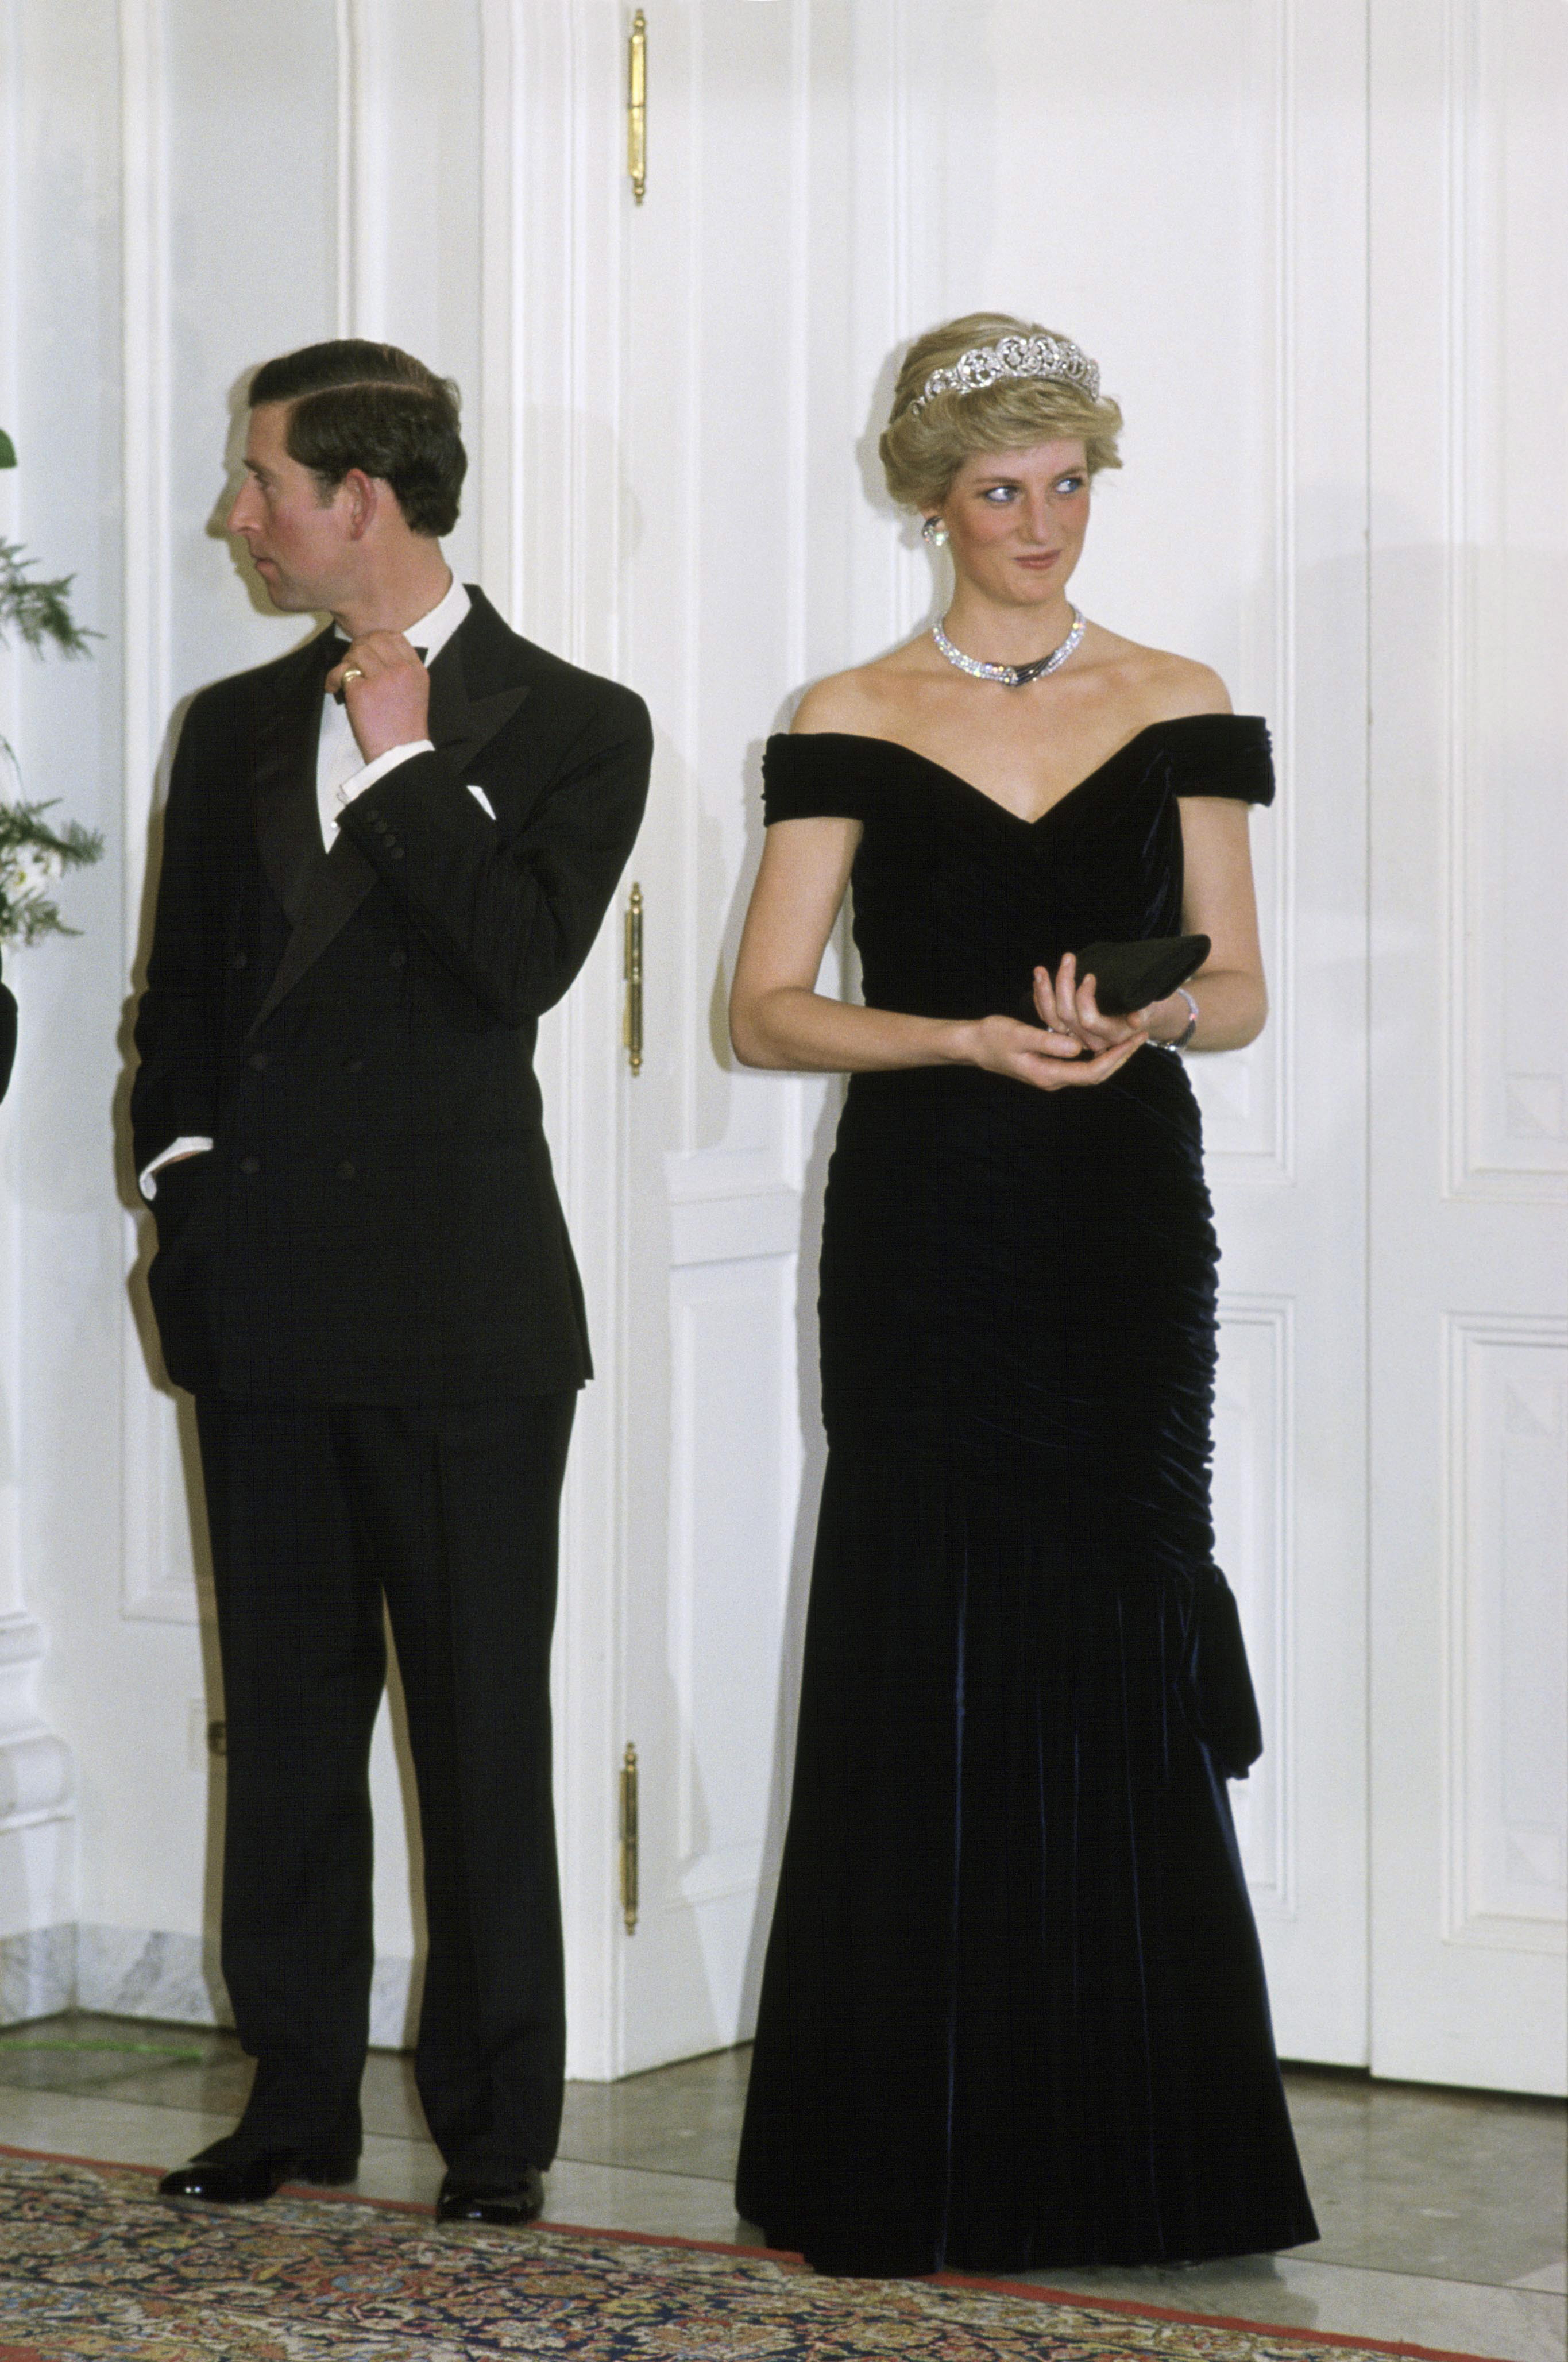 This black velvet, off-the-shoulder Victor Edelstein dress that Diana first sported at the White House in 1985 became known as the  John Travolta  dress because Diana shared a dance with him in it.